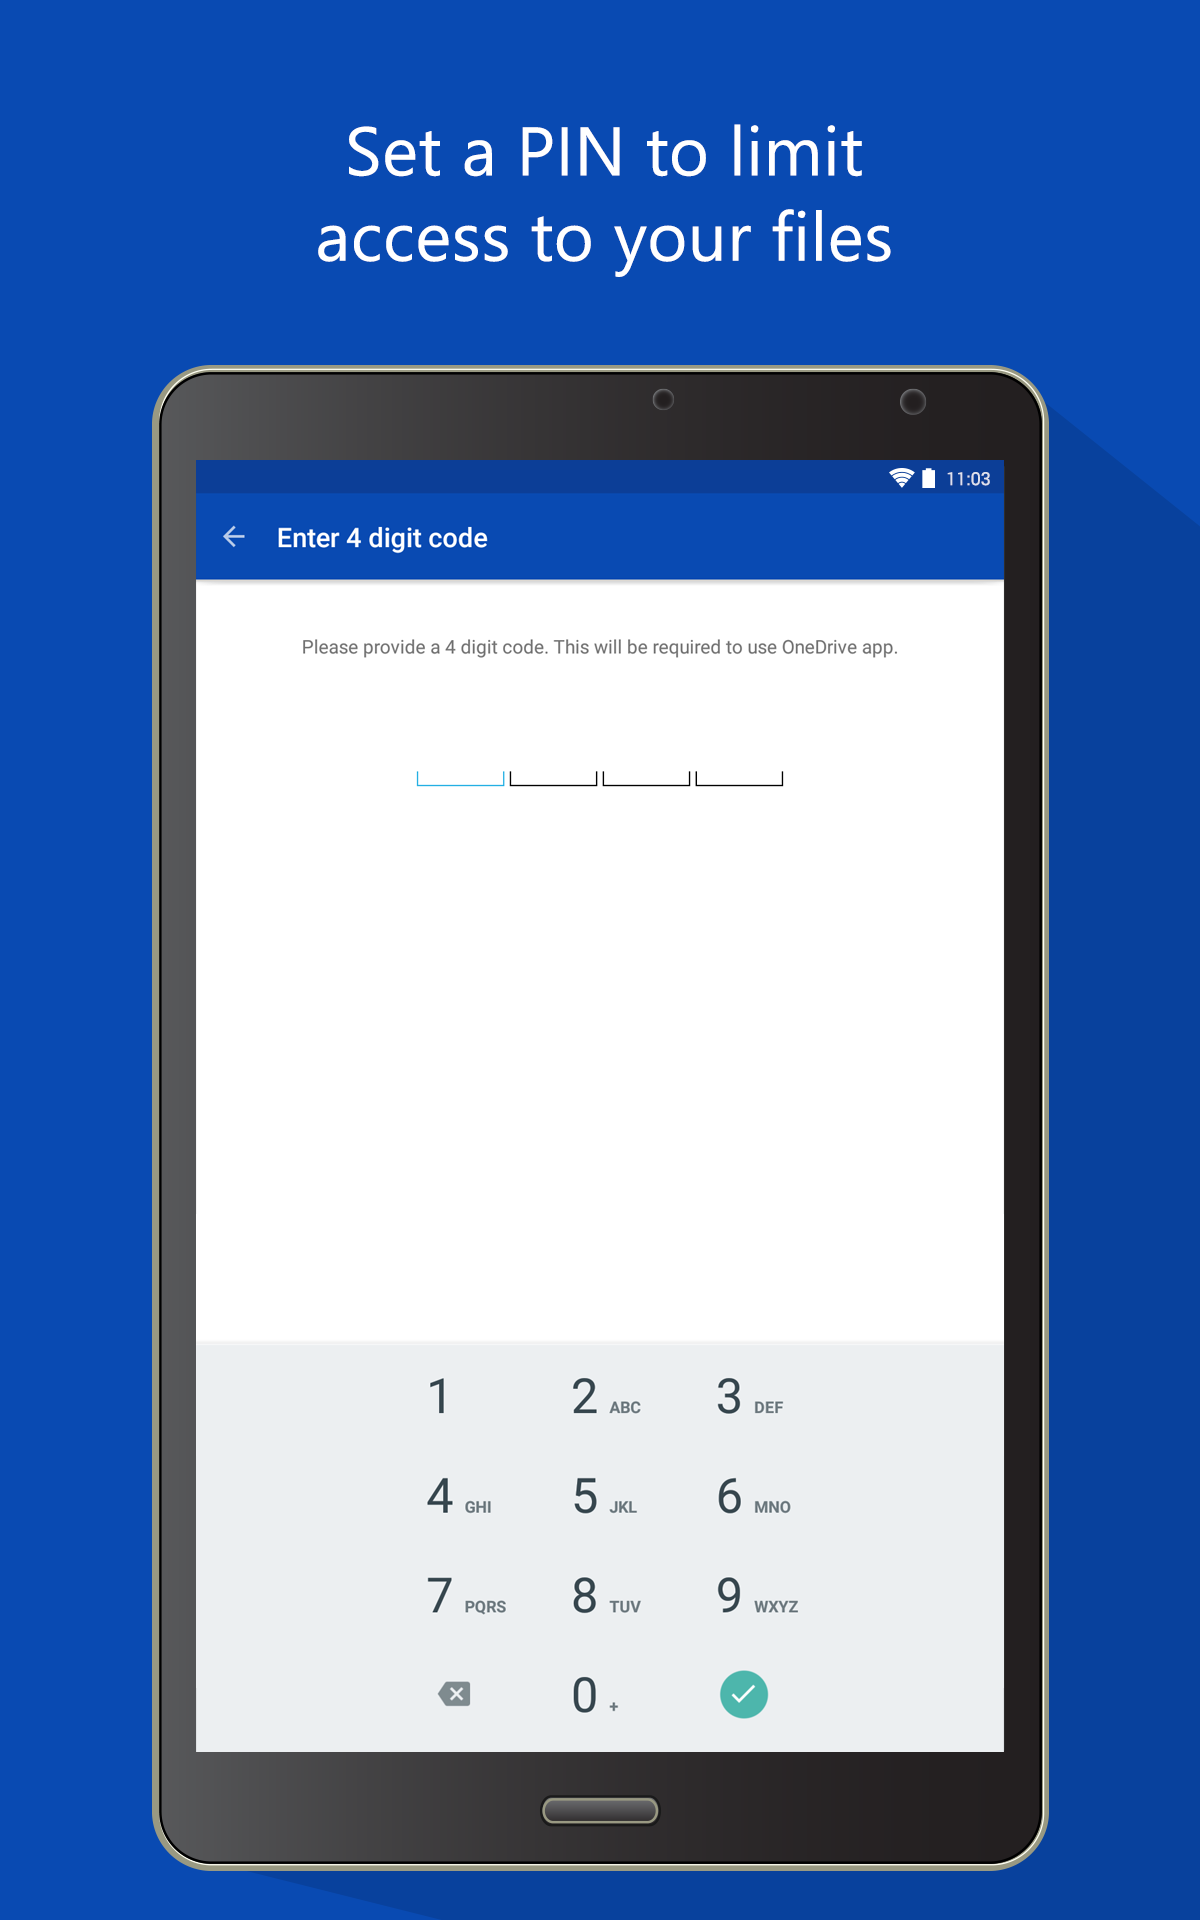 Amazon.com: OneDrive: Appstore for Android